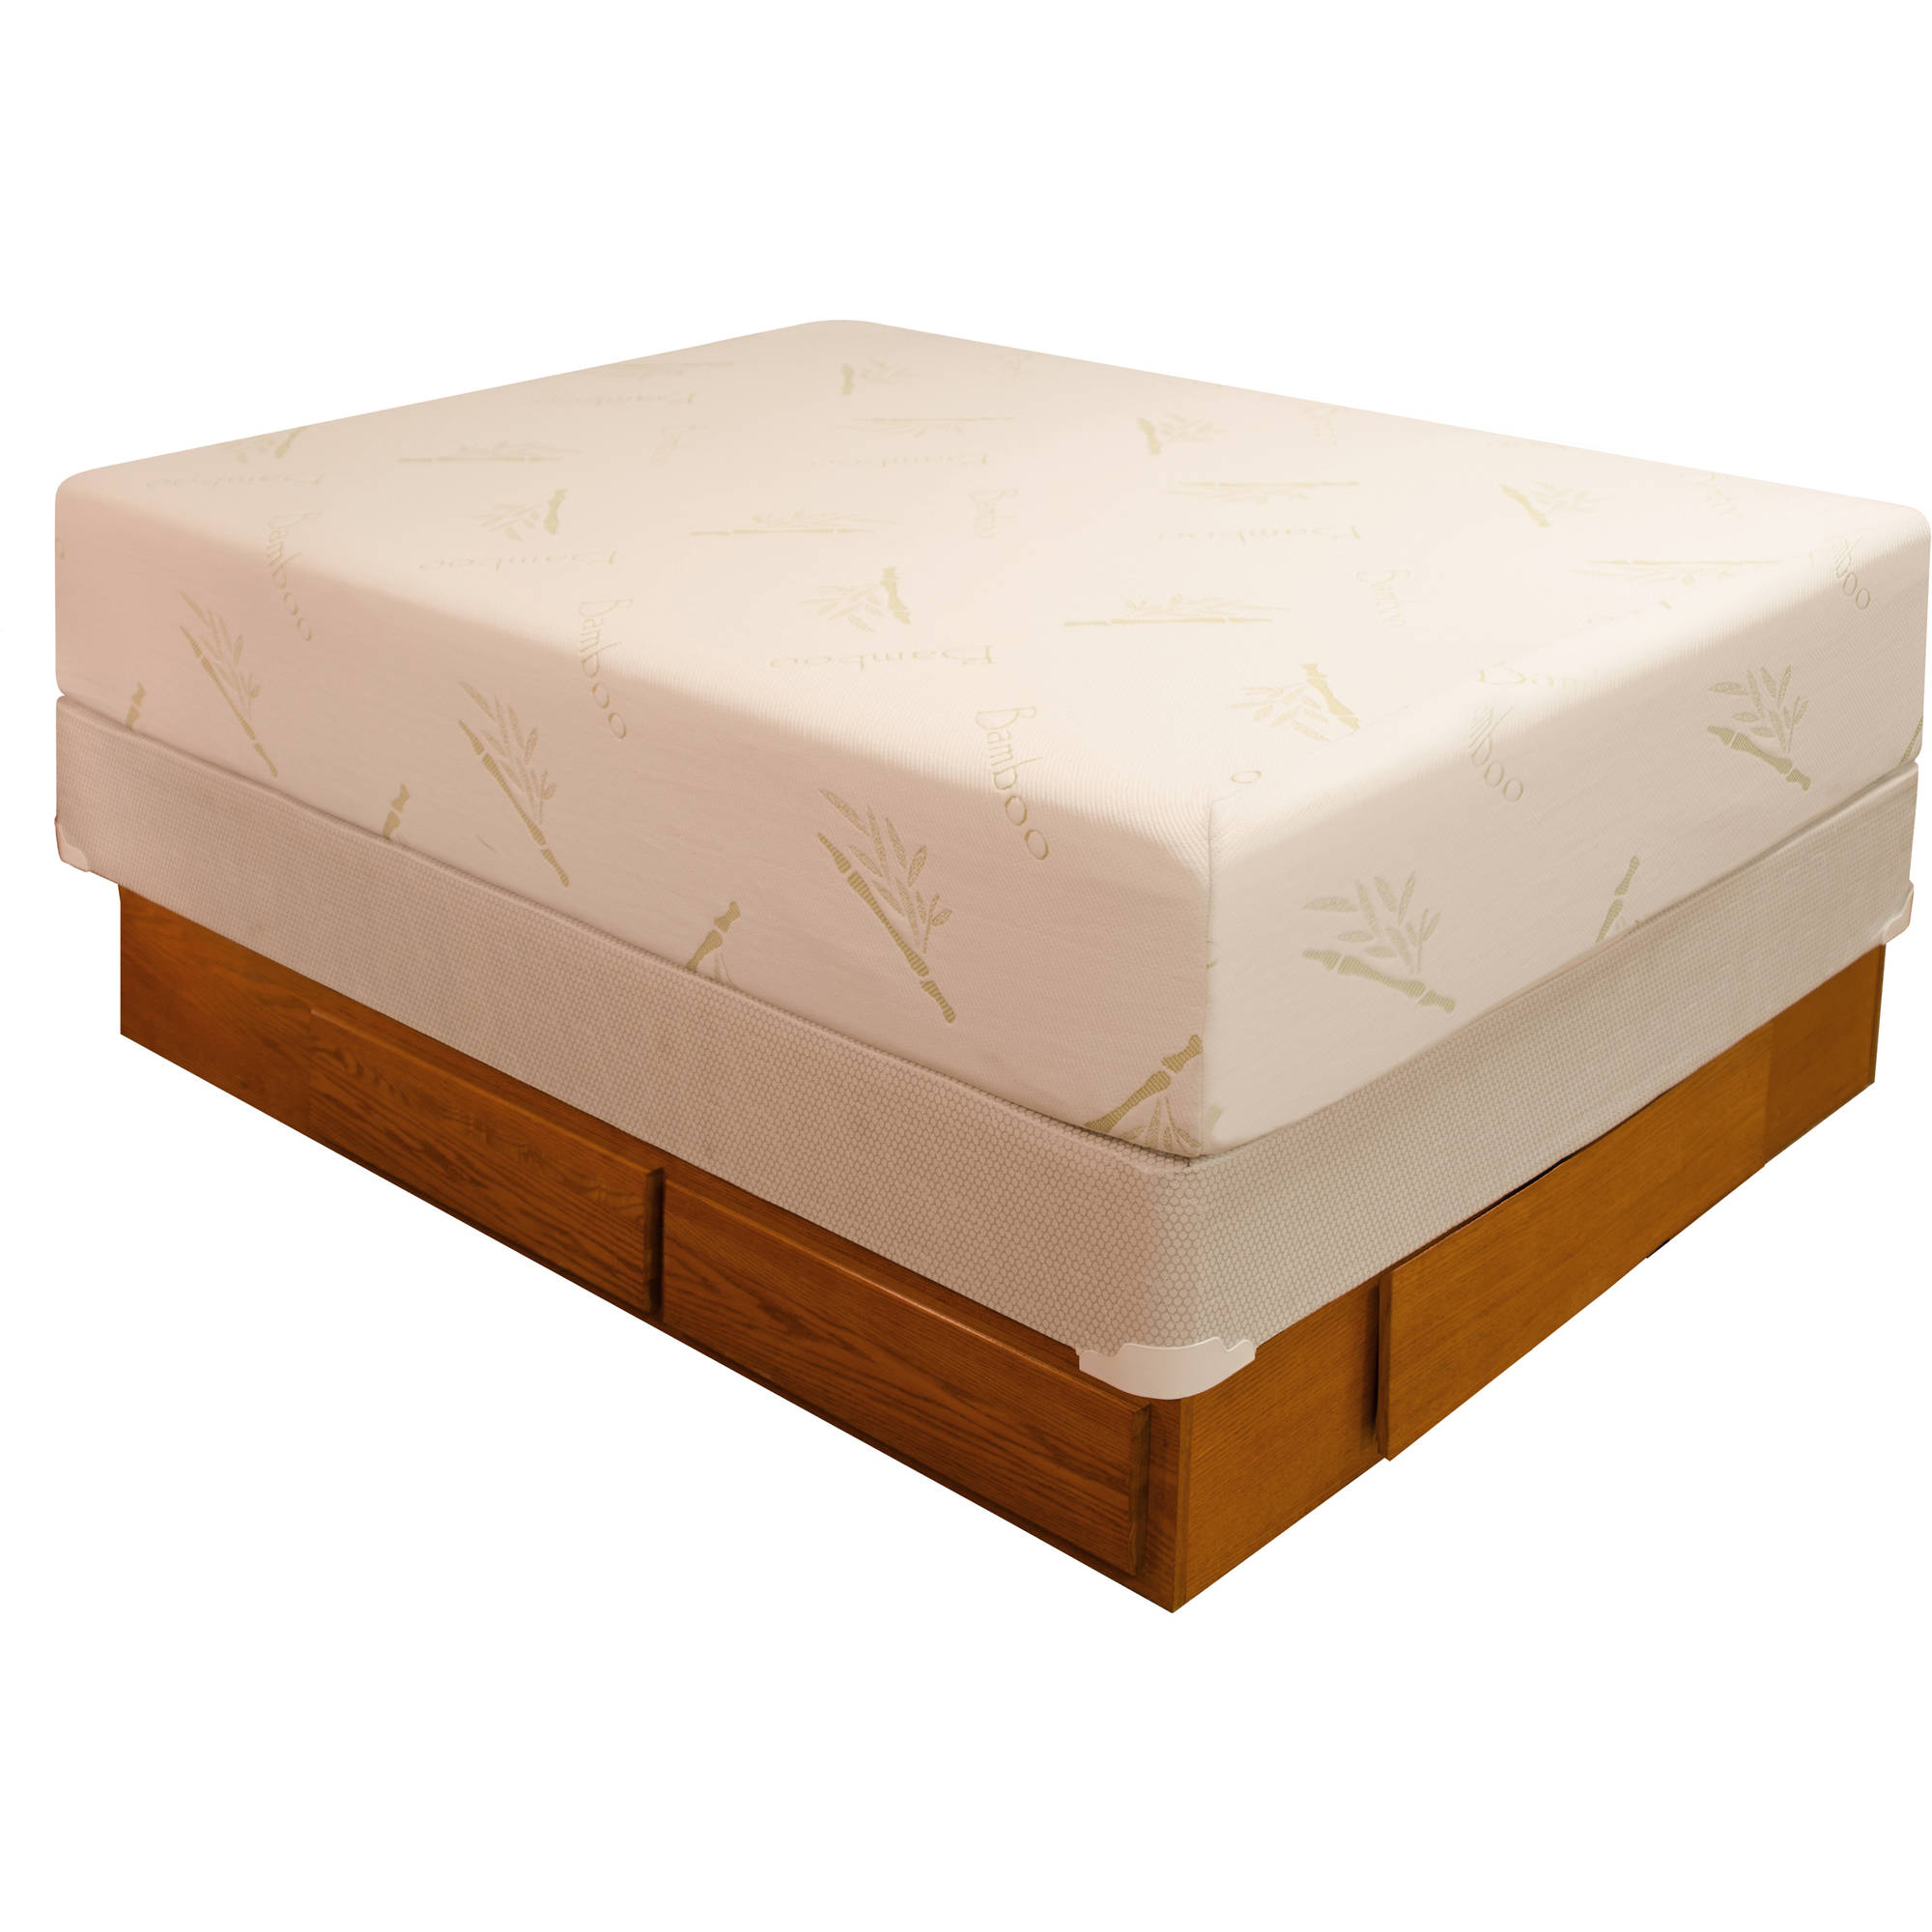 California King Bed Mattress And Box Spring Whispering